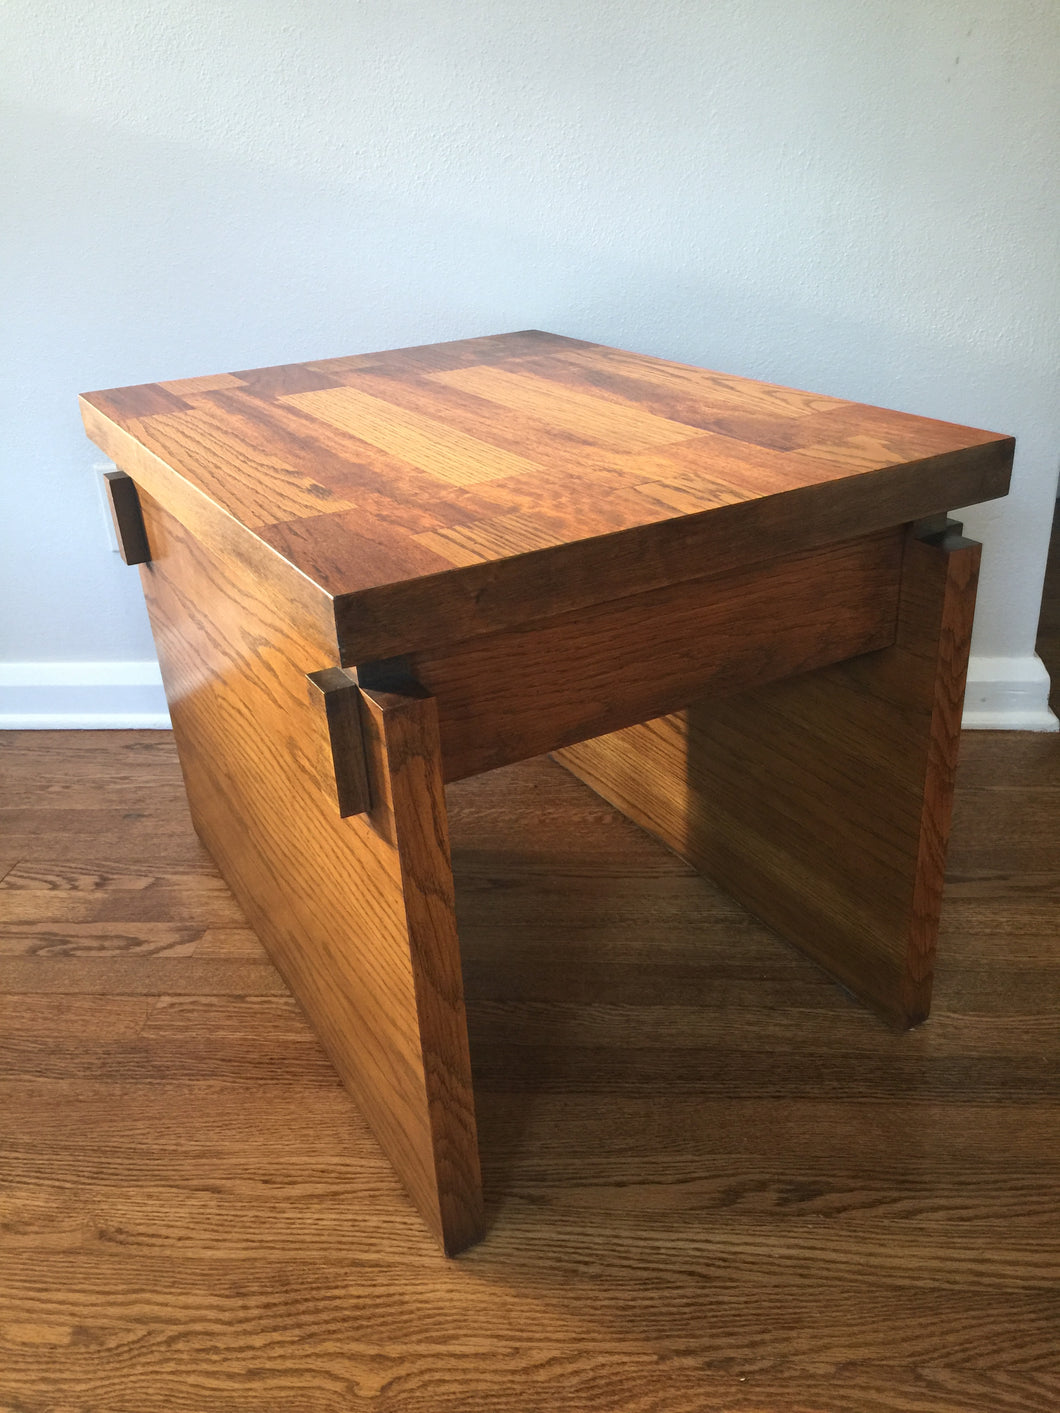 Vintage Mid Century Modern Brutalist Lane Furniture Side Table